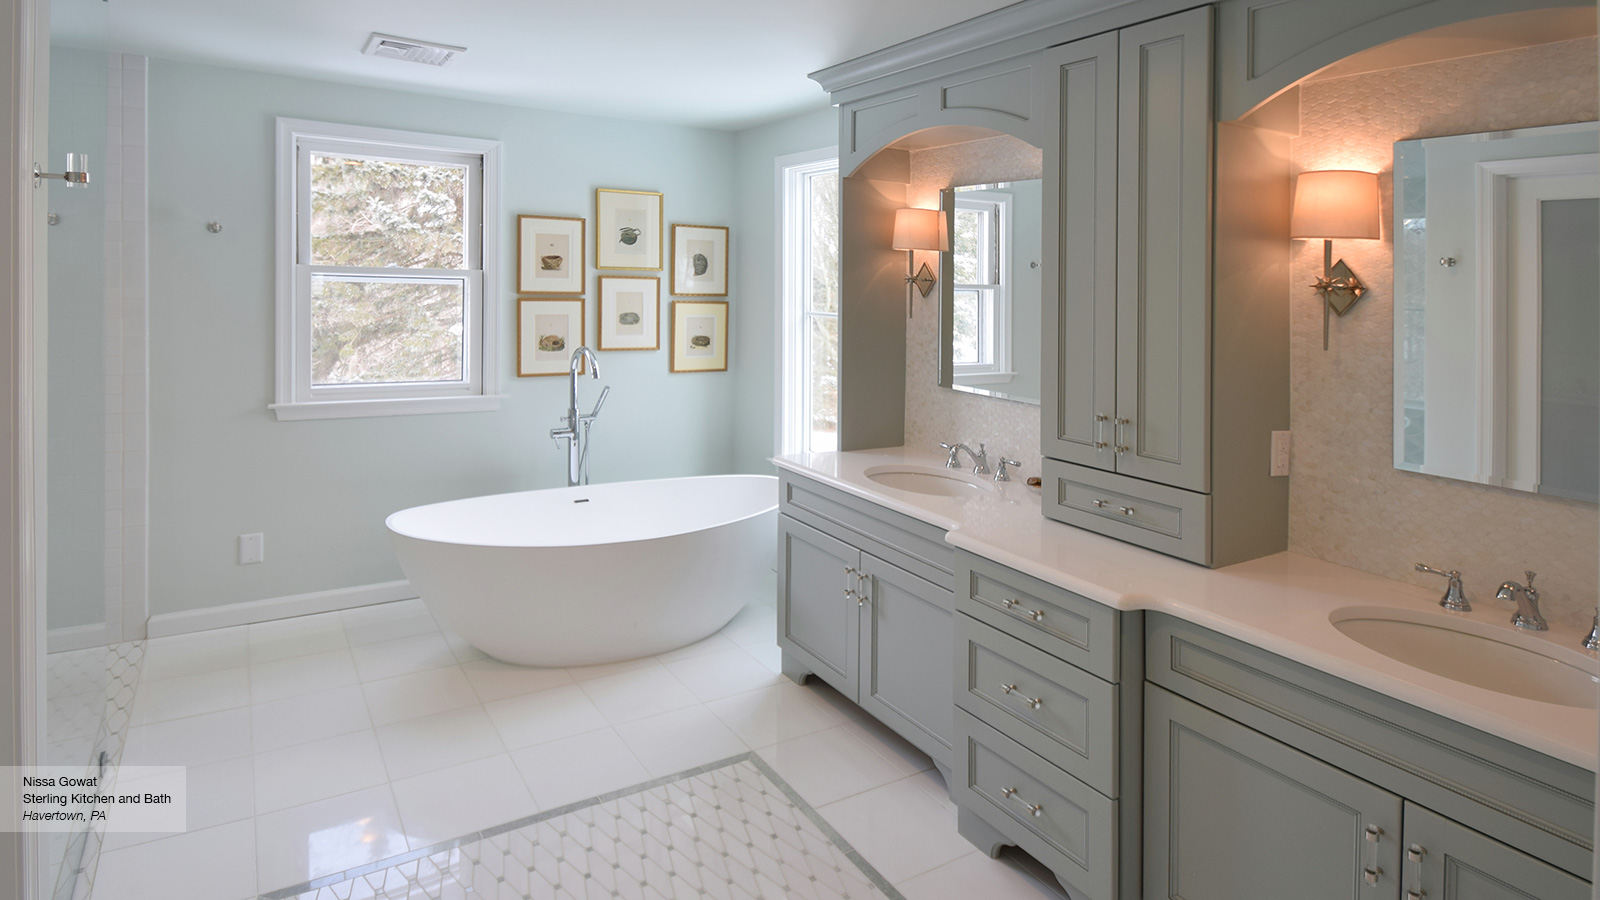 Master Bath Cabinets - Omega Cabinetry on Bathroom Ideas With Maple Cabinets  id=24357